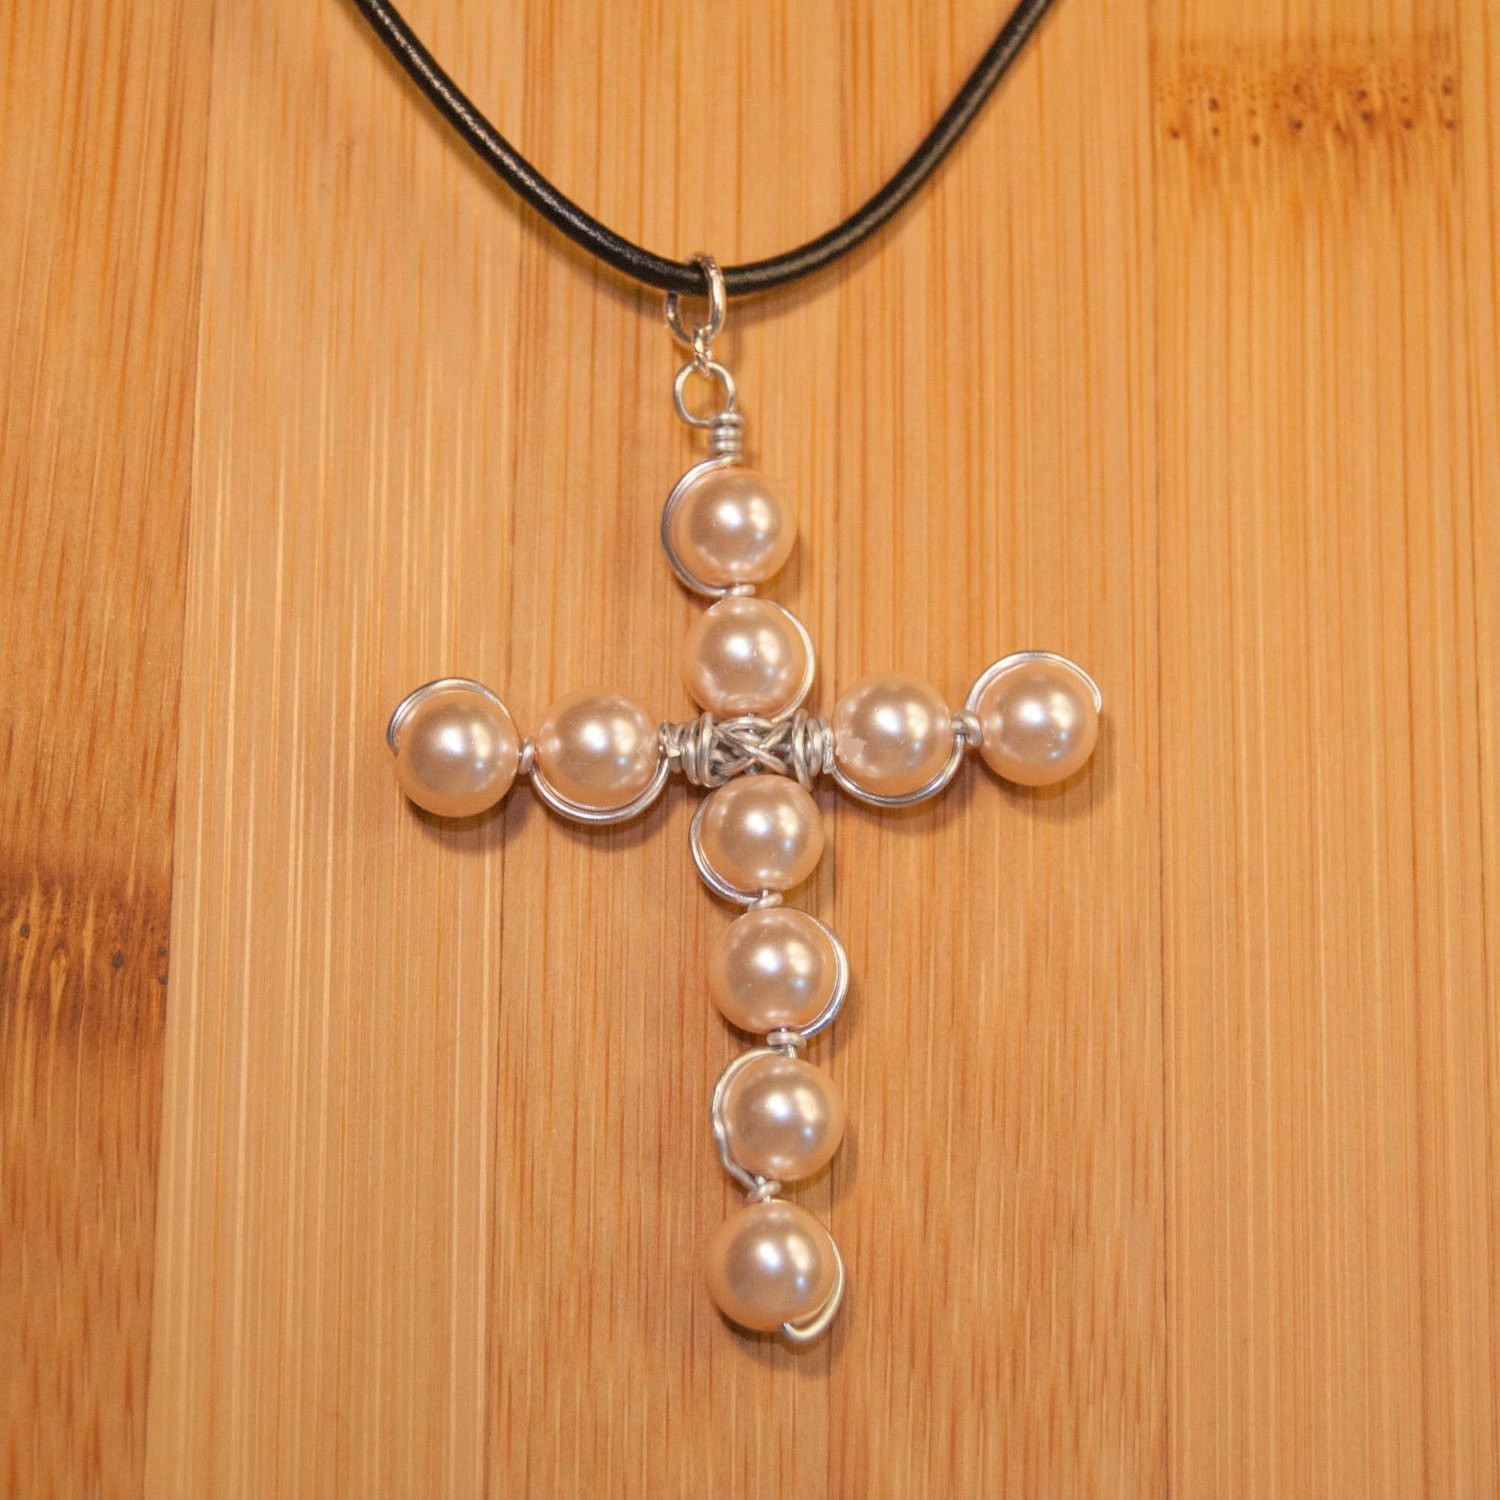 Beaded Wire Wrapped Cross Necklace, Wrap Beaded Wire Necklace, Bead Necklace, Leather Necklace